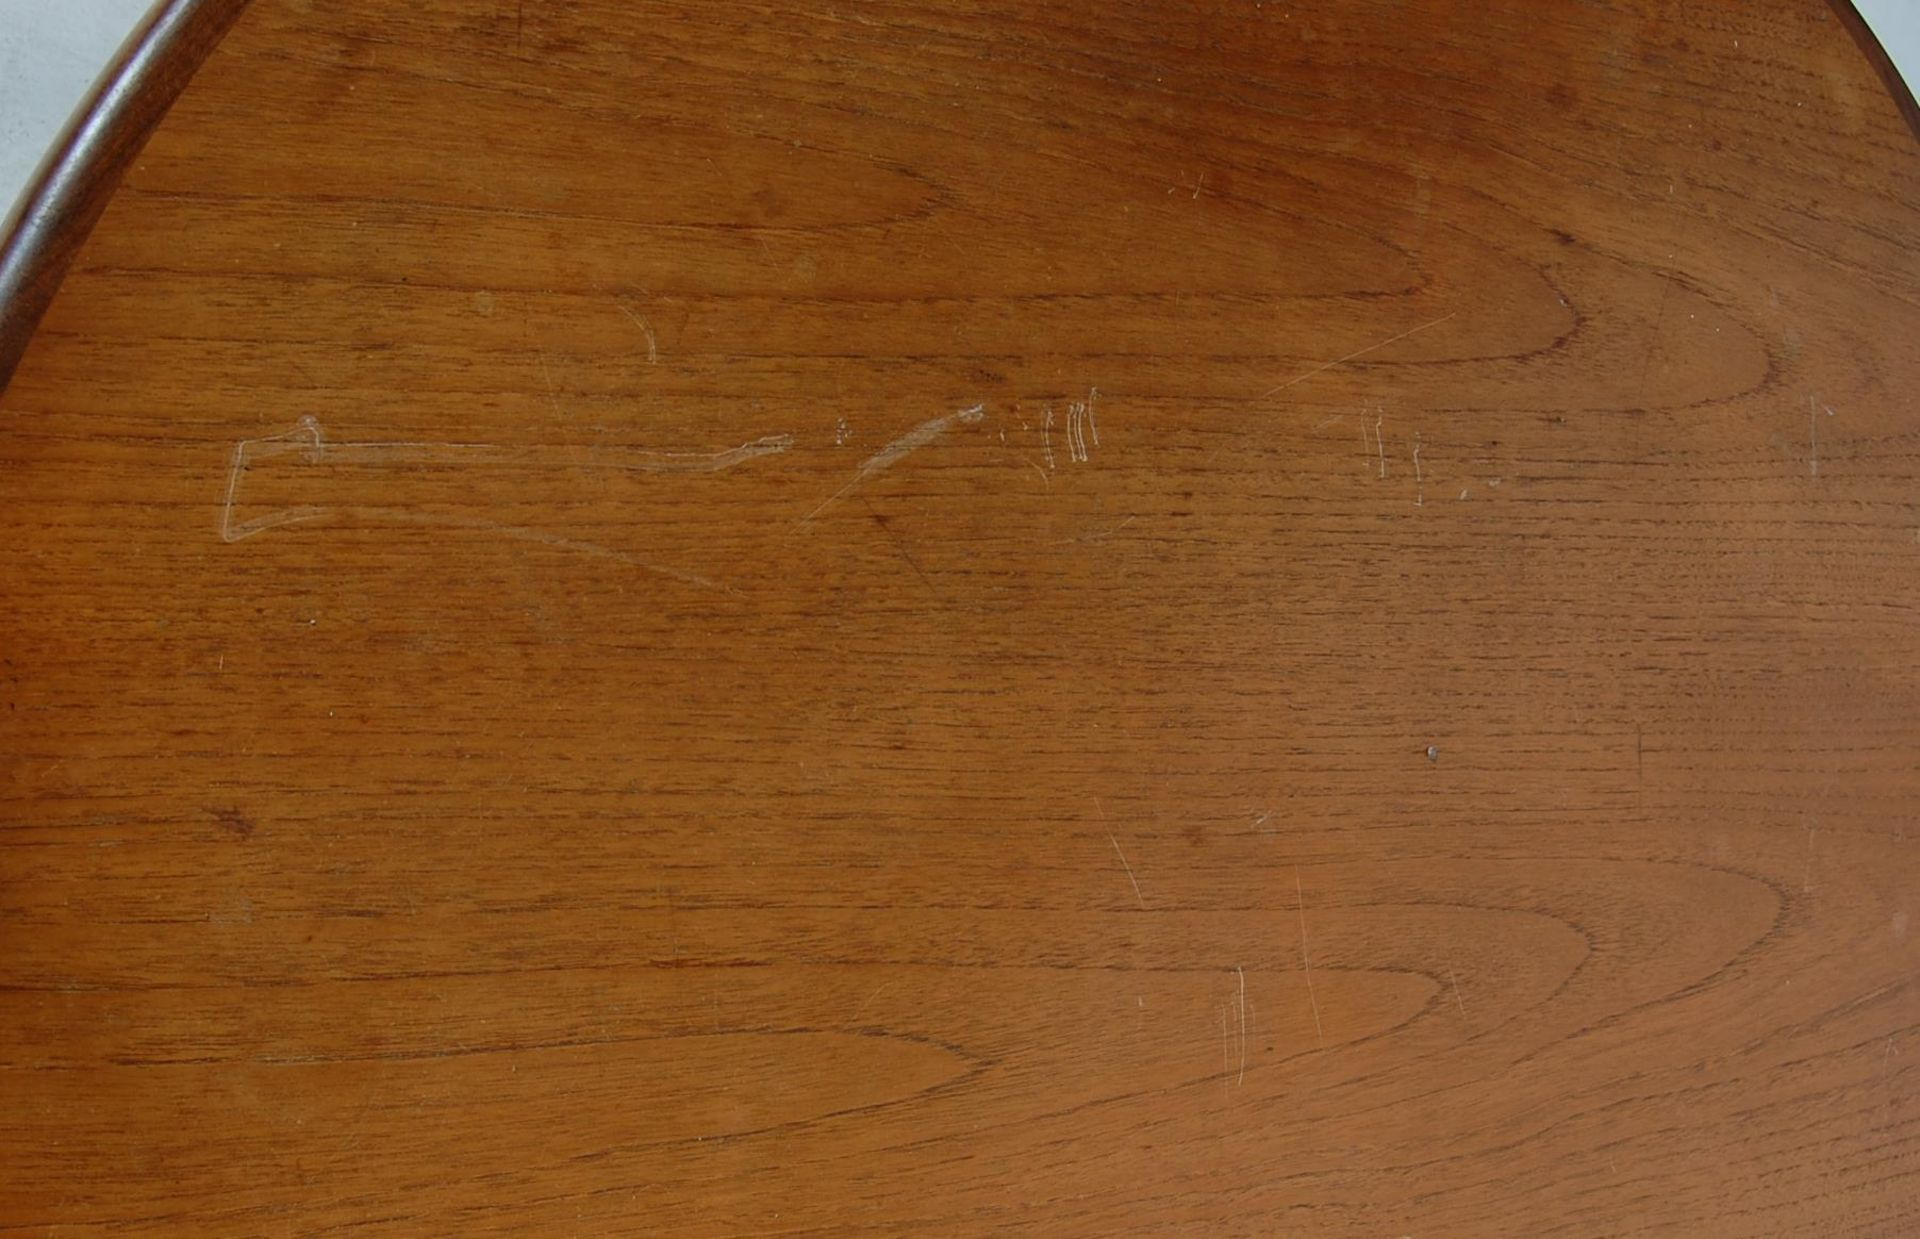 RETRO VINTAGE 1970S GPLAN DINING TABLE AND CHAIRS - Image 4 of 12